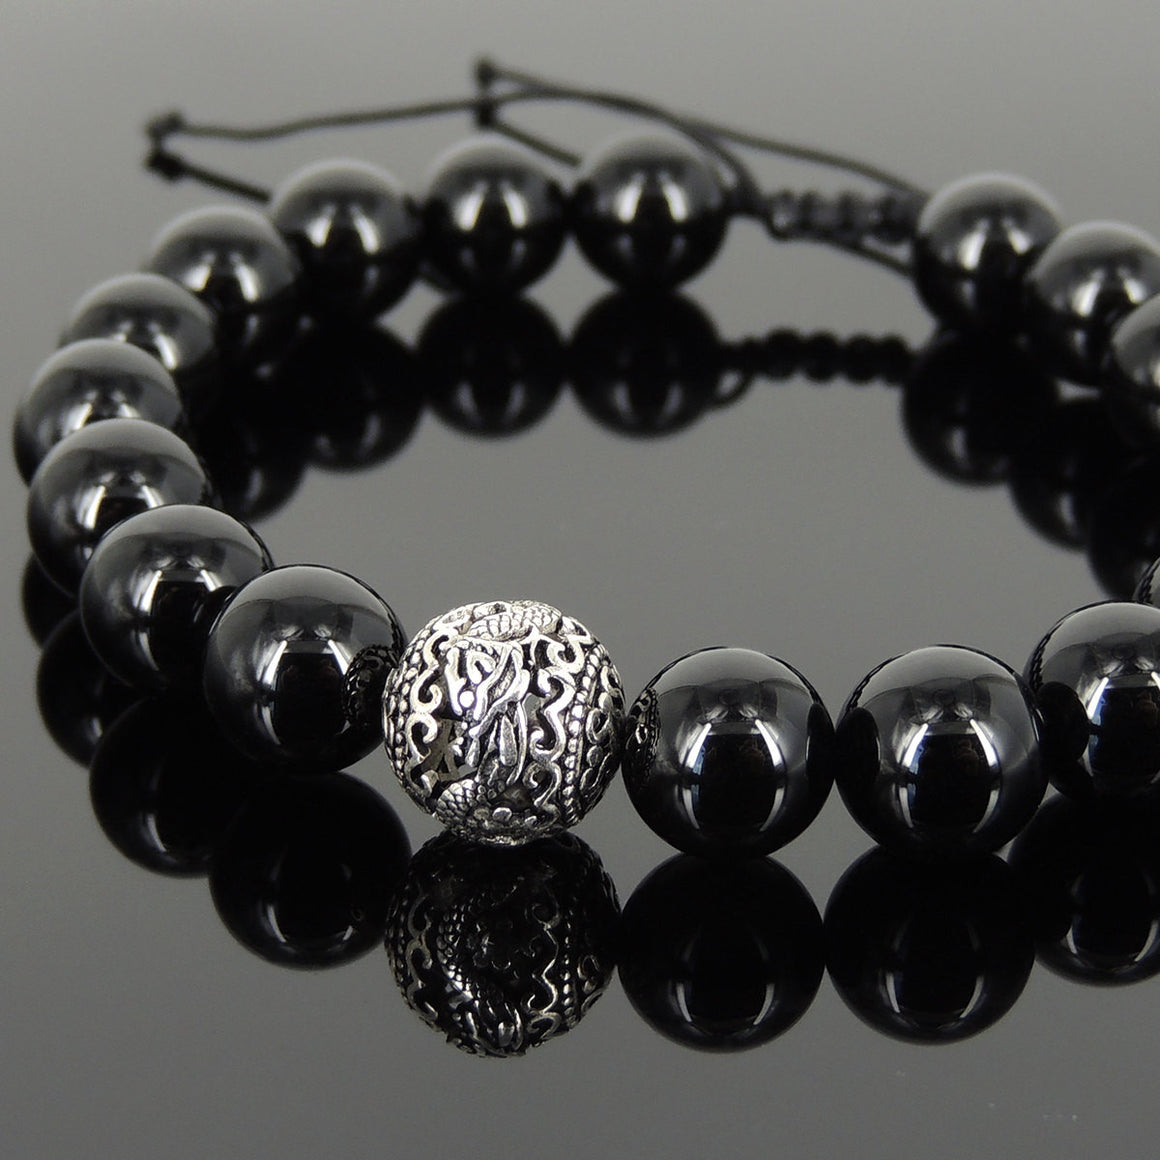 Bright Black Onyx Adjustable Braided Healing Gemstone Bracelet with S925 Sterling Silver Dragon Bead - Handmade by Gem & Silver BR922